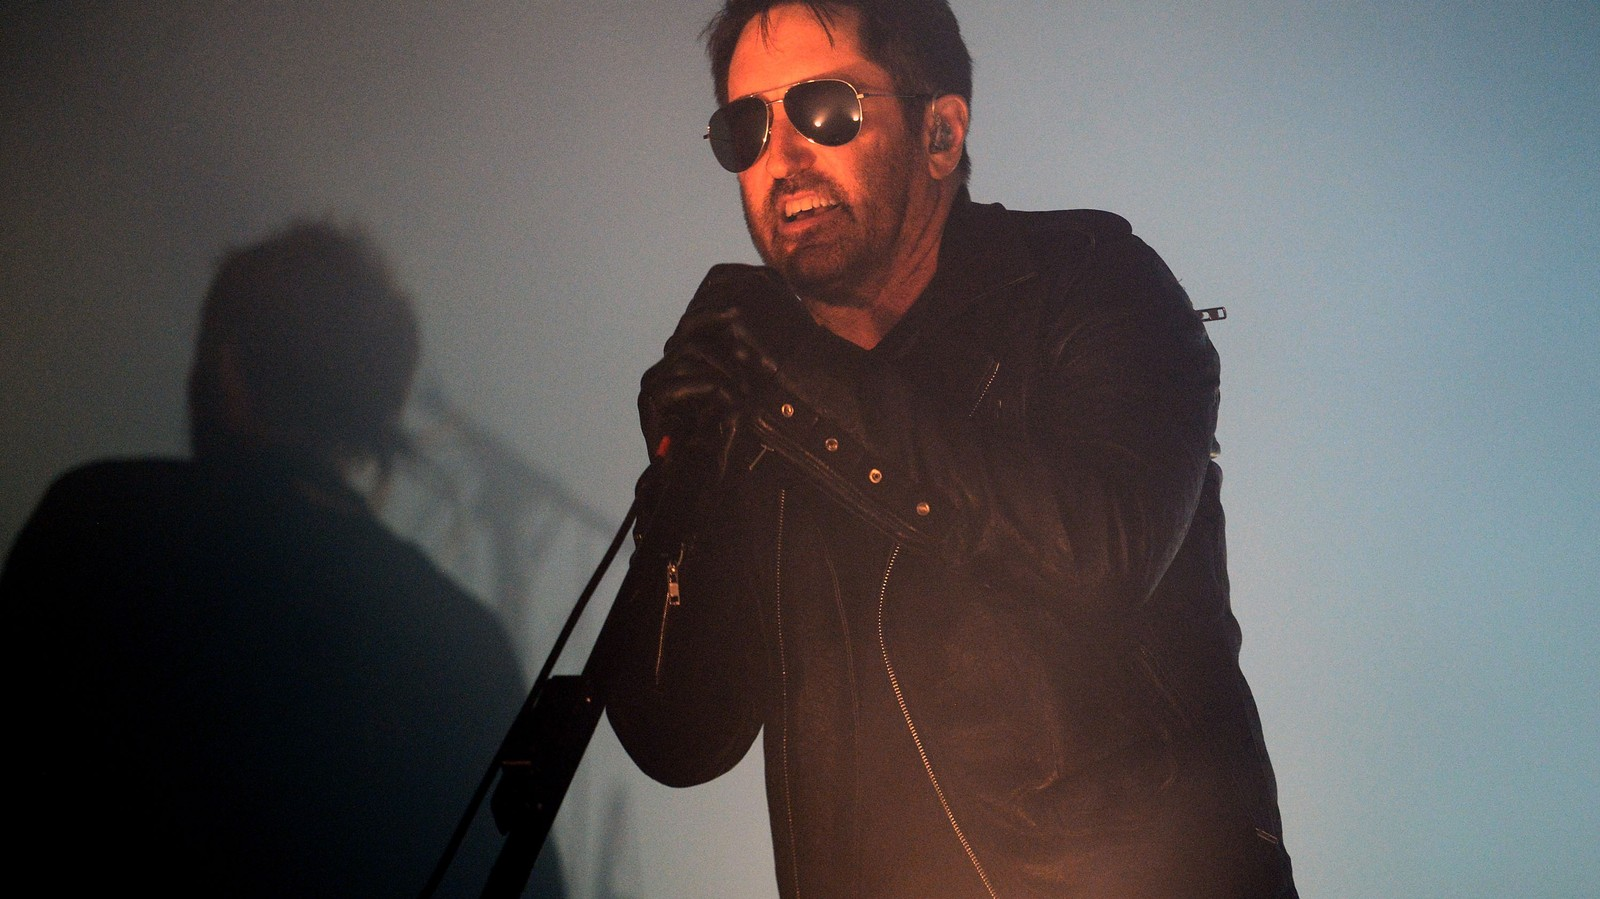 Trent Reznor's Music Was the Perfect Soundtrack to the Dark, Disorienting 2010s